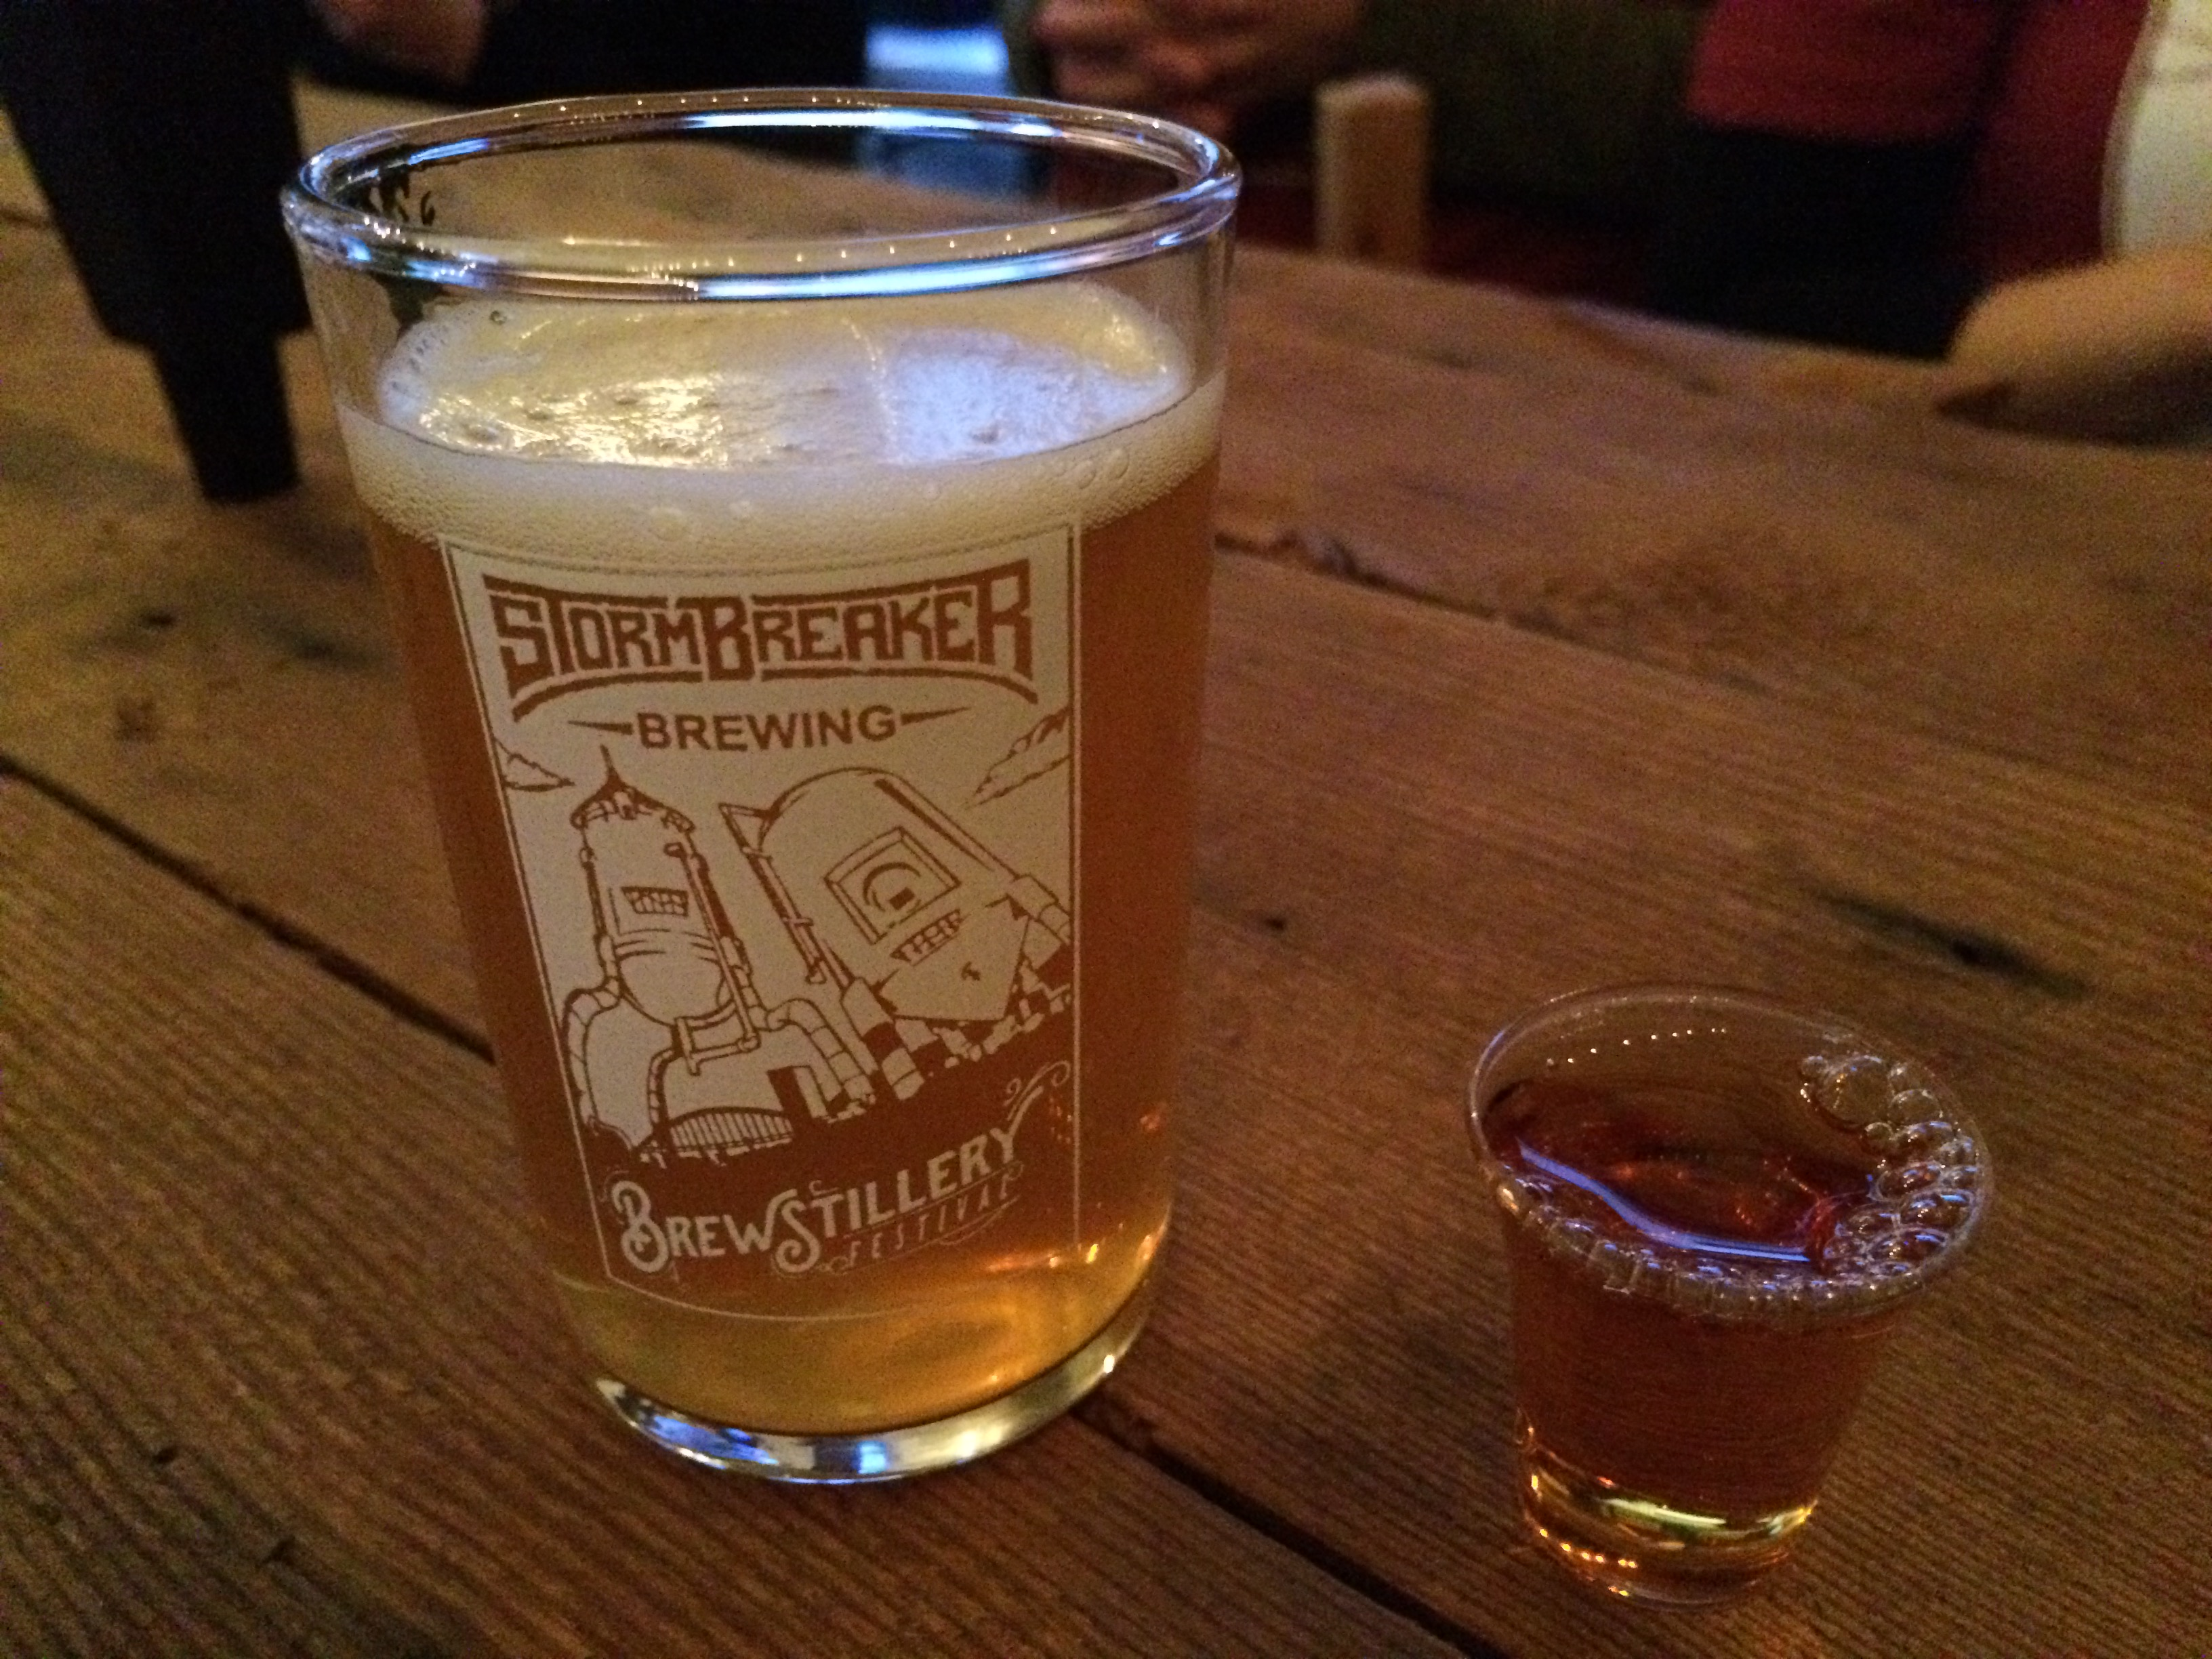 A pairing at the 2015 StormBreaker Brewing Brewstillery Festival.